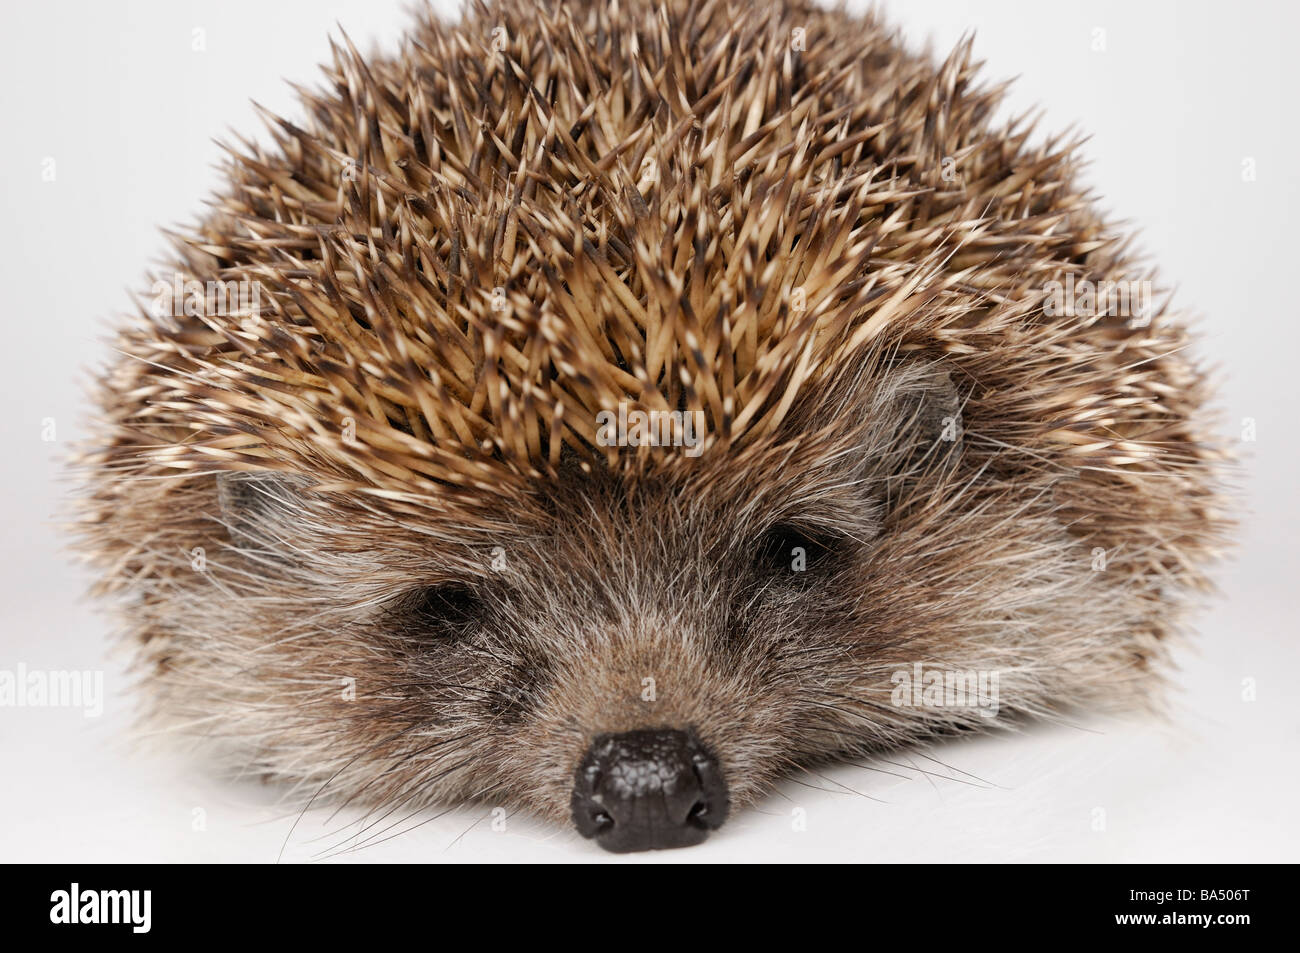 Hedgehog Sleeping Stock Photo